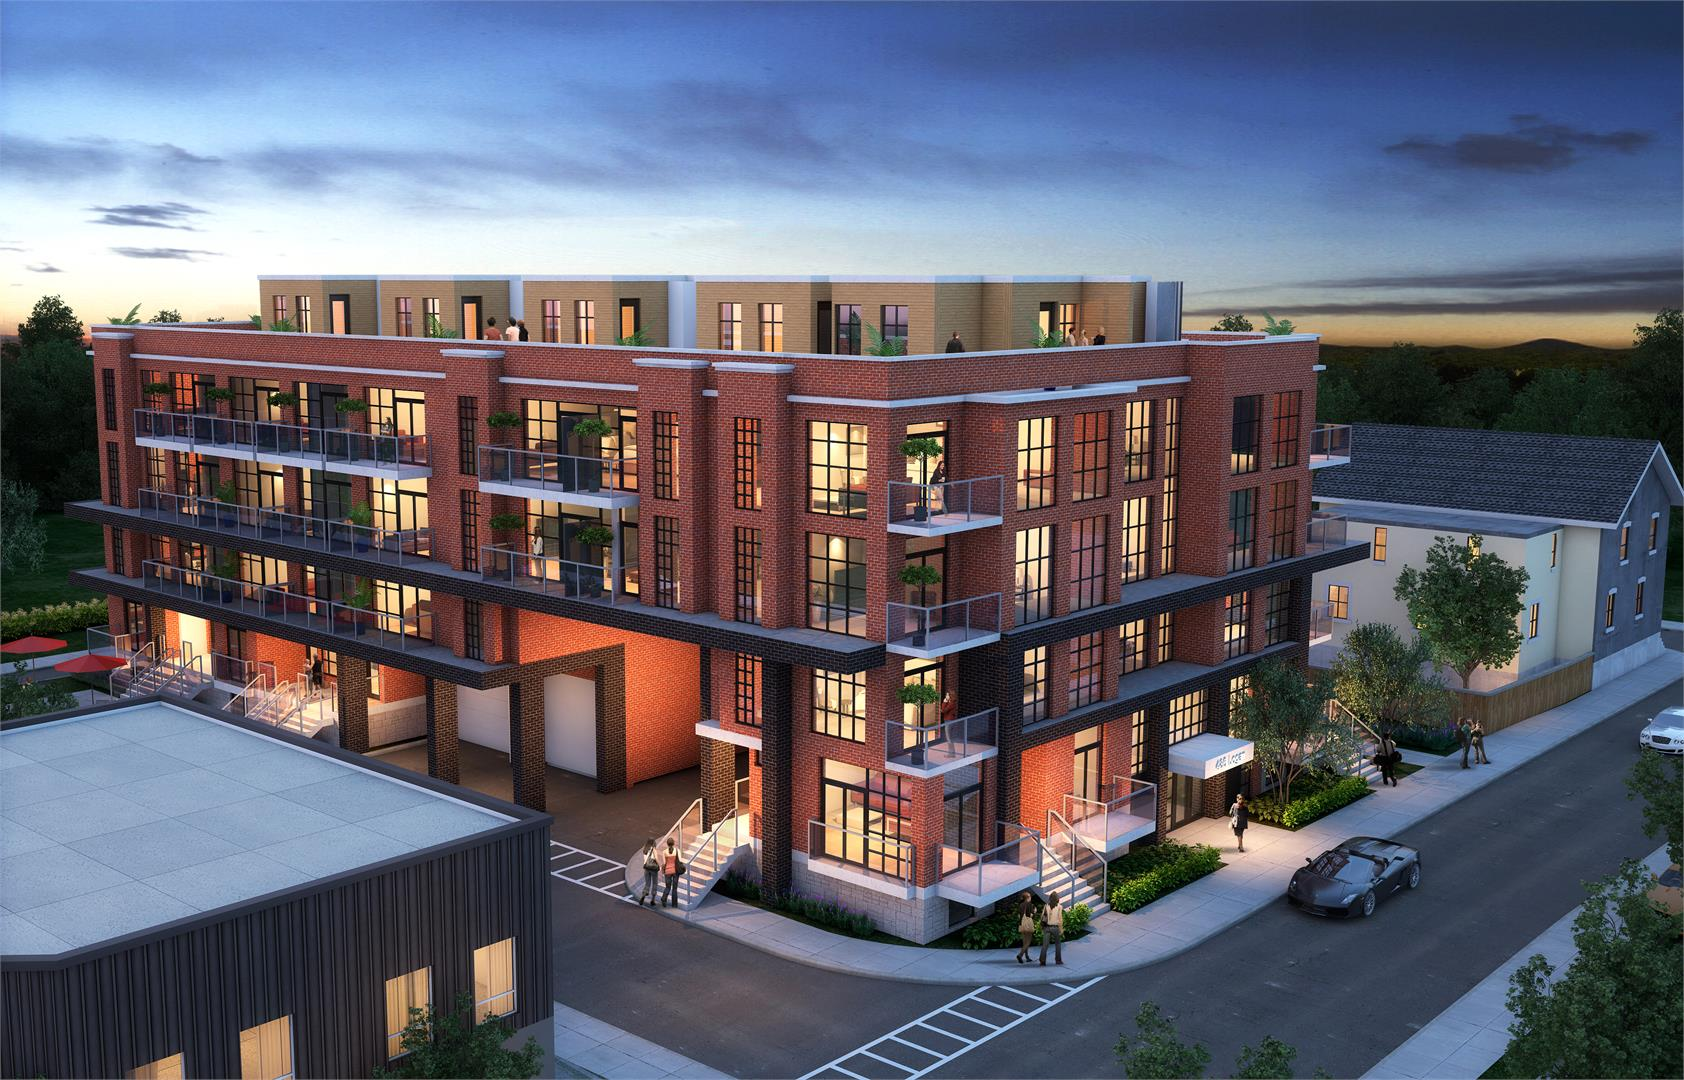 3d image of Elevate at Logan, new condo development on 485 Logan Avenue.